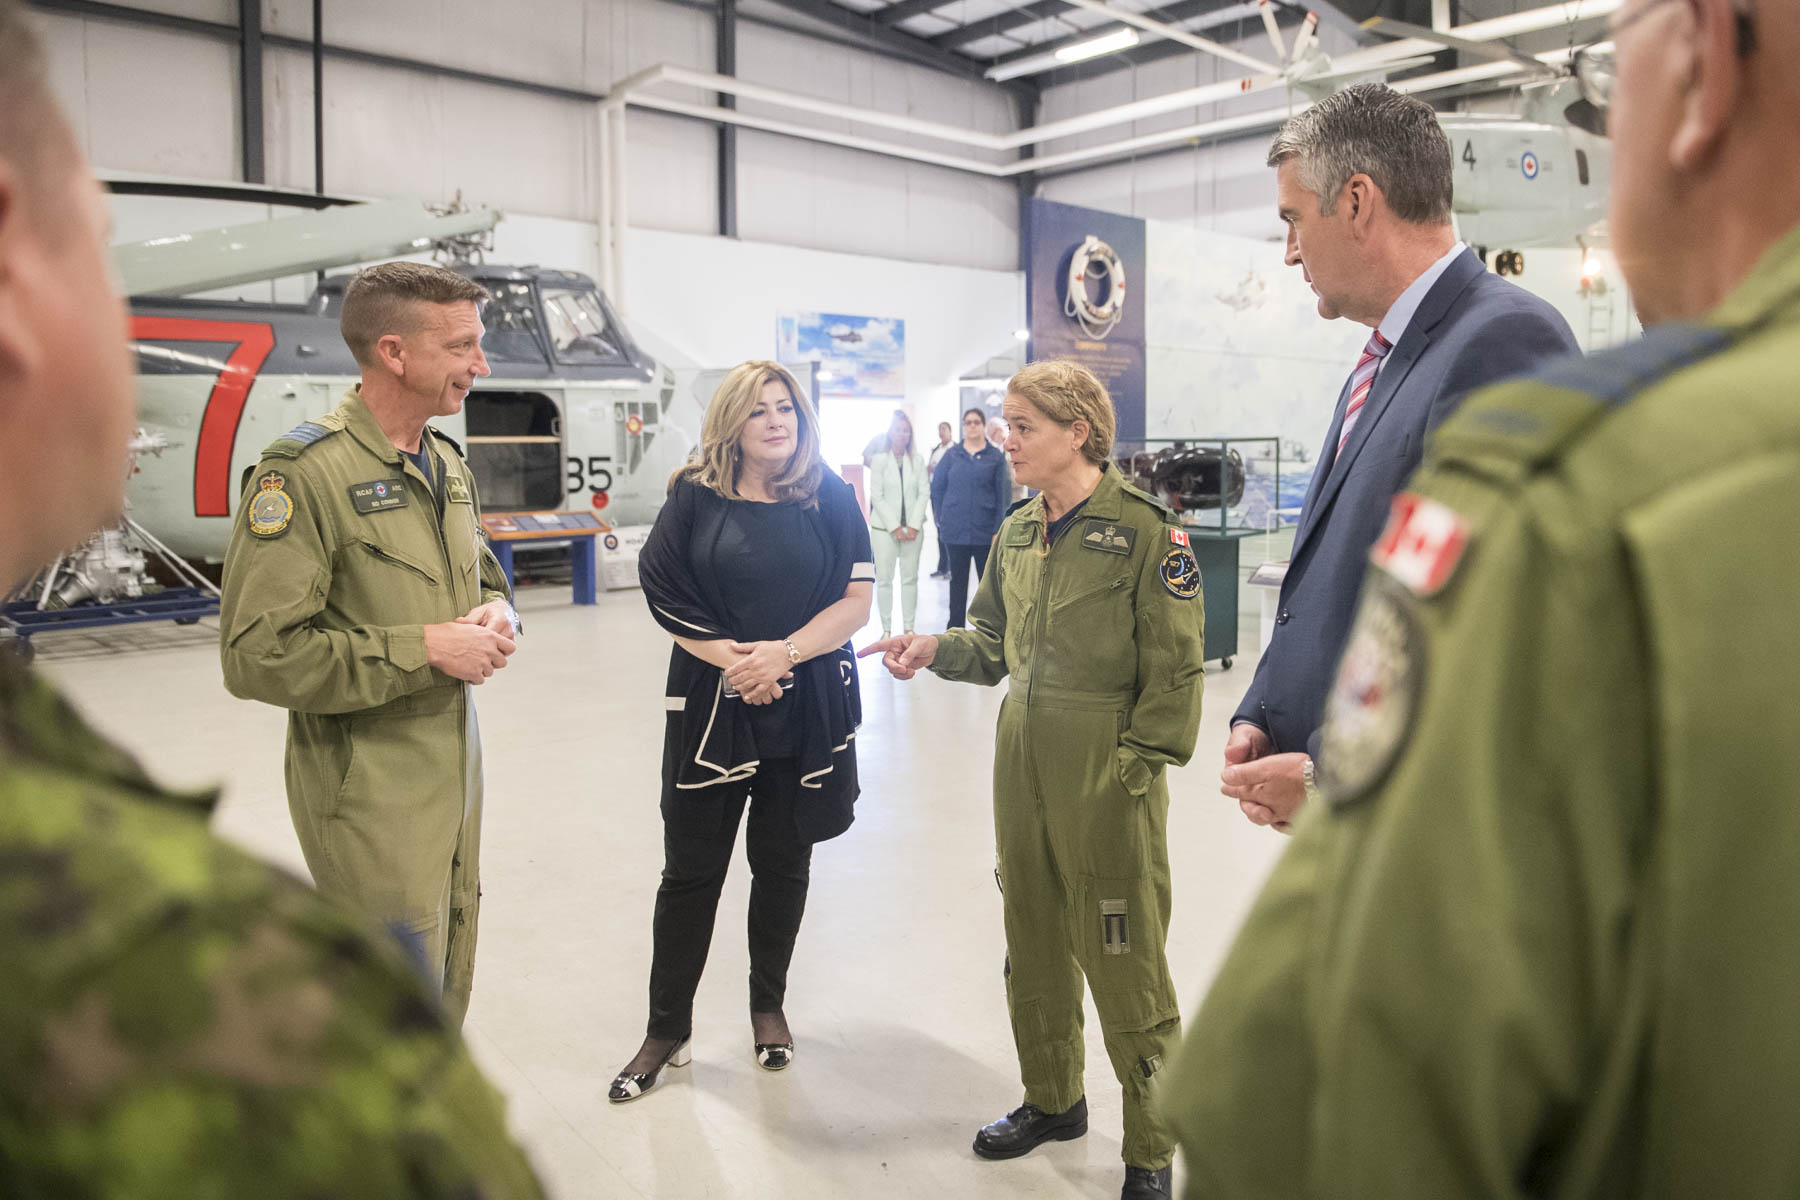 Upon arrival at 12 Wing Shearwater, the Governor General, the Honourable Stephen McNeil, Premier of Nova Scotia, and Colonel Sid Connor, 12 Wing Commanding Officer, toured the Shearwater Aviation Museum to learn about the airfield's rich history.